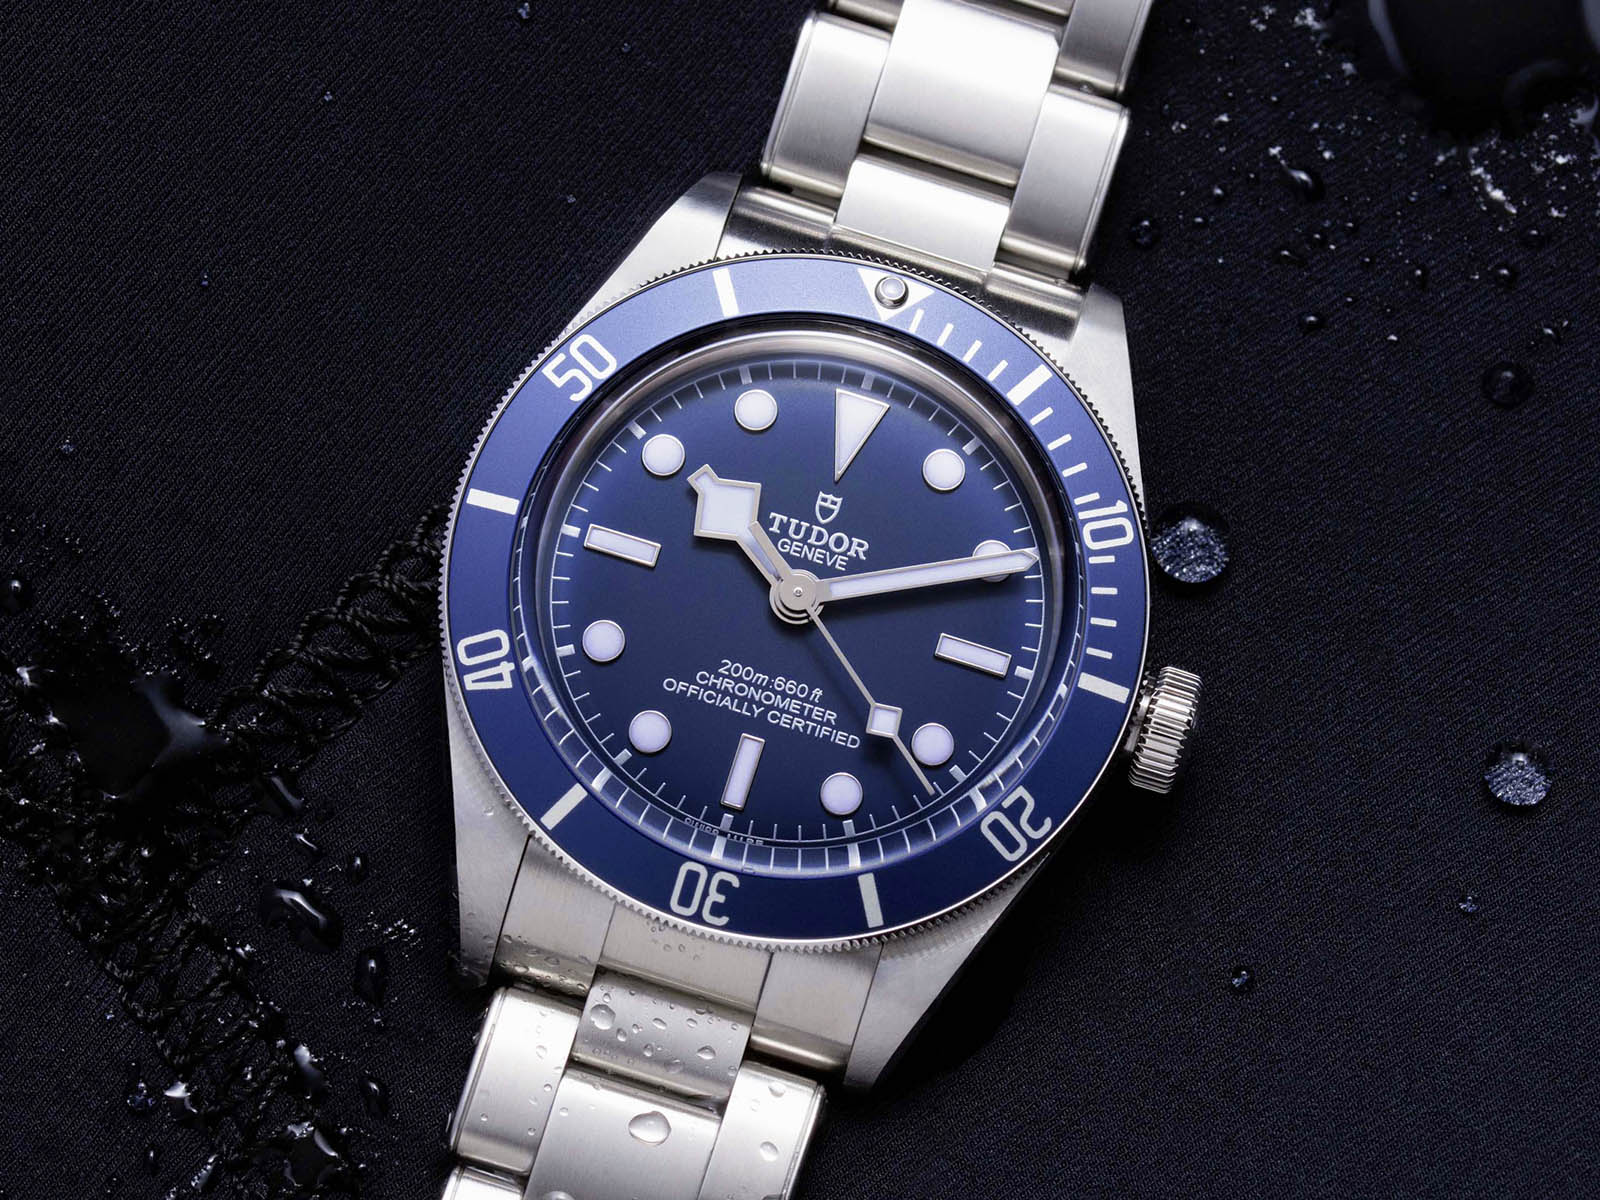 79030b-tudor-black-bay-fifty-eight-navy-blue-1.jpg